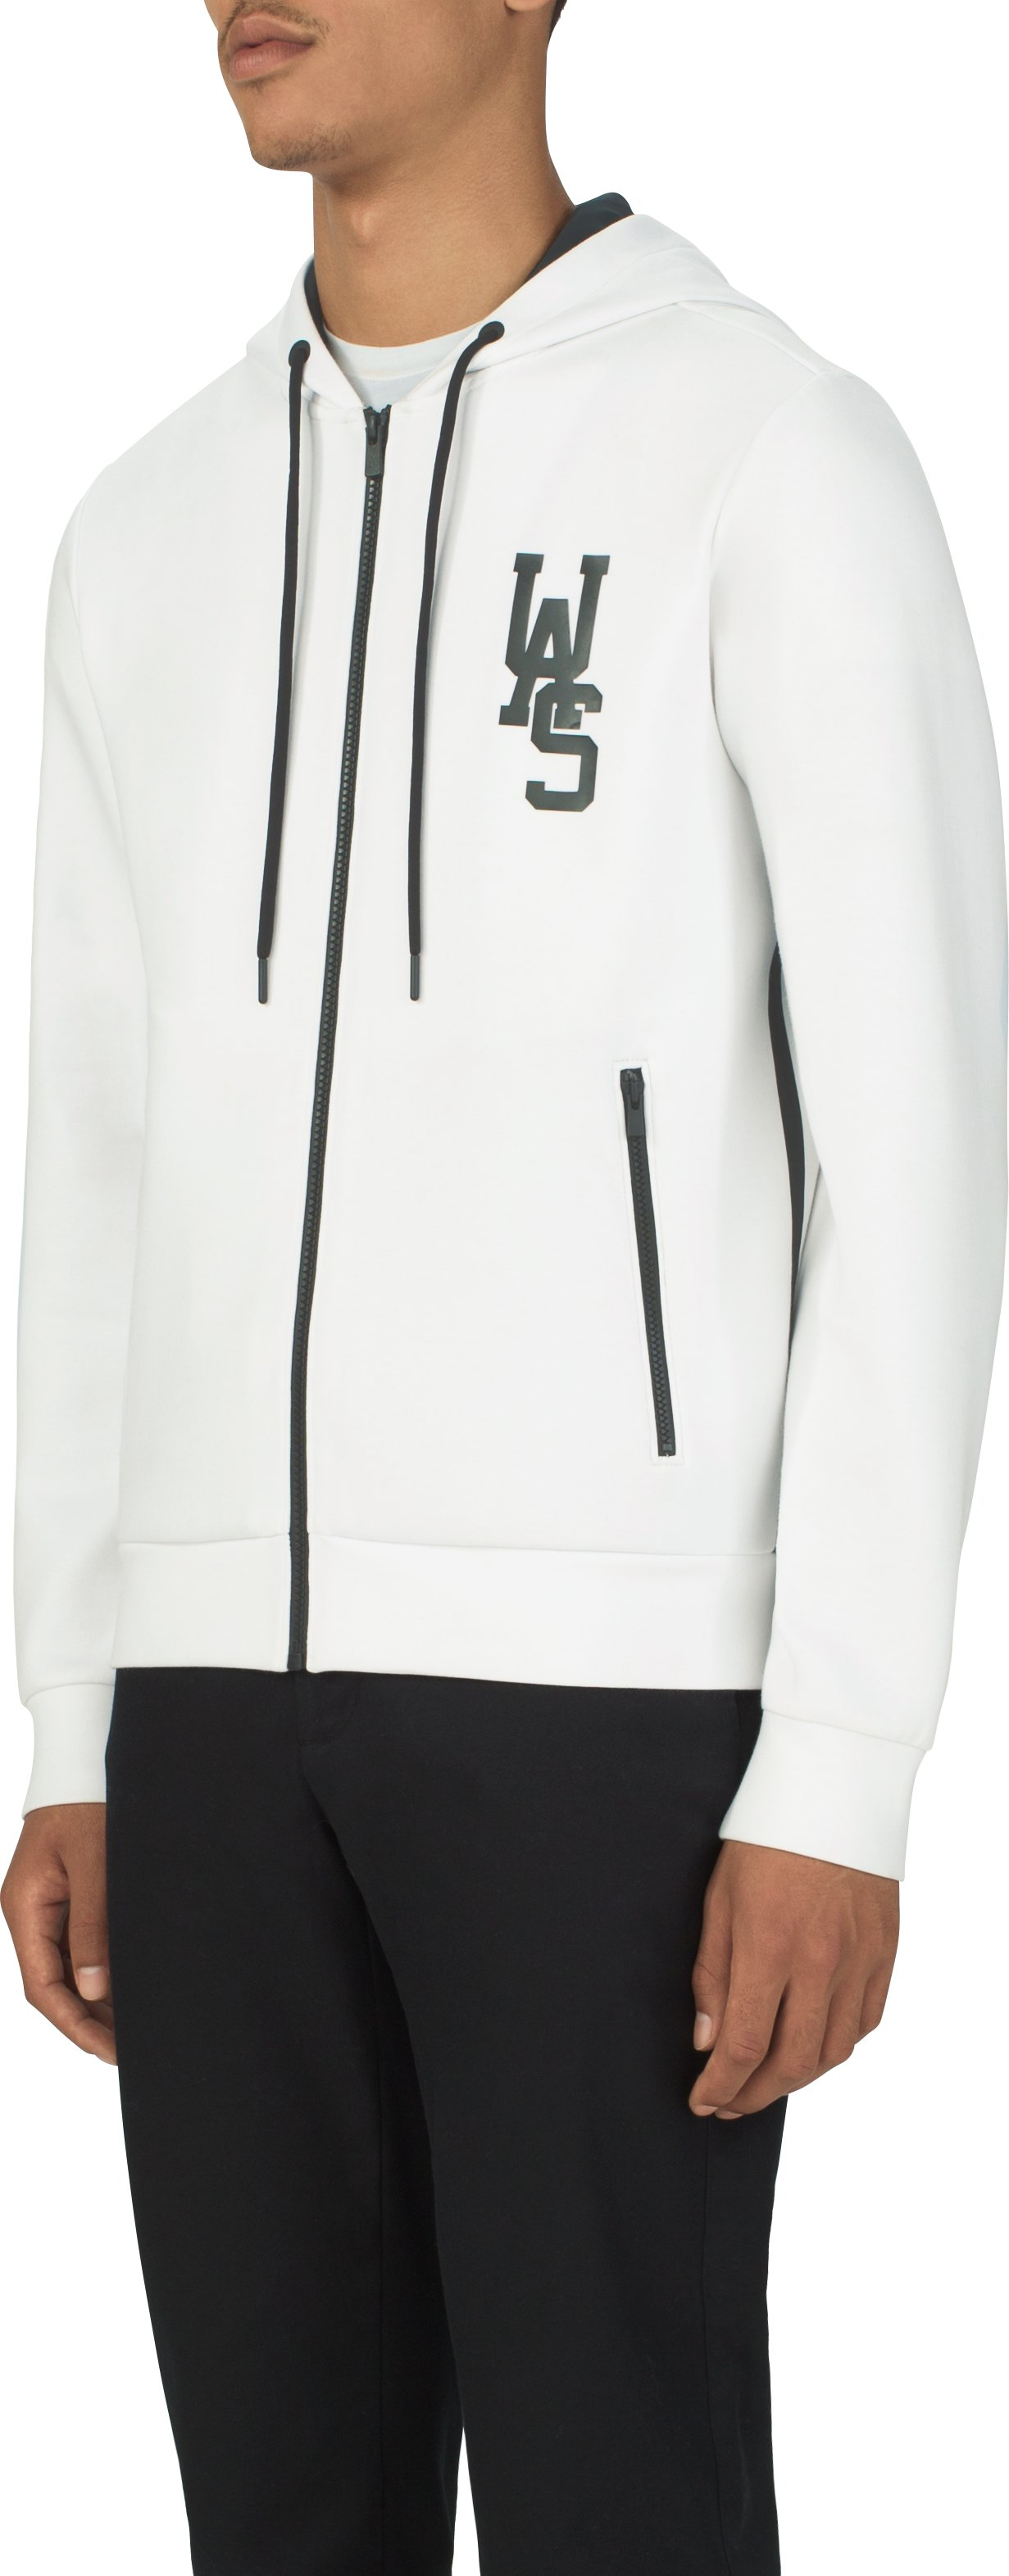 UAS Men's Tailgate Graphic Hoodie, White